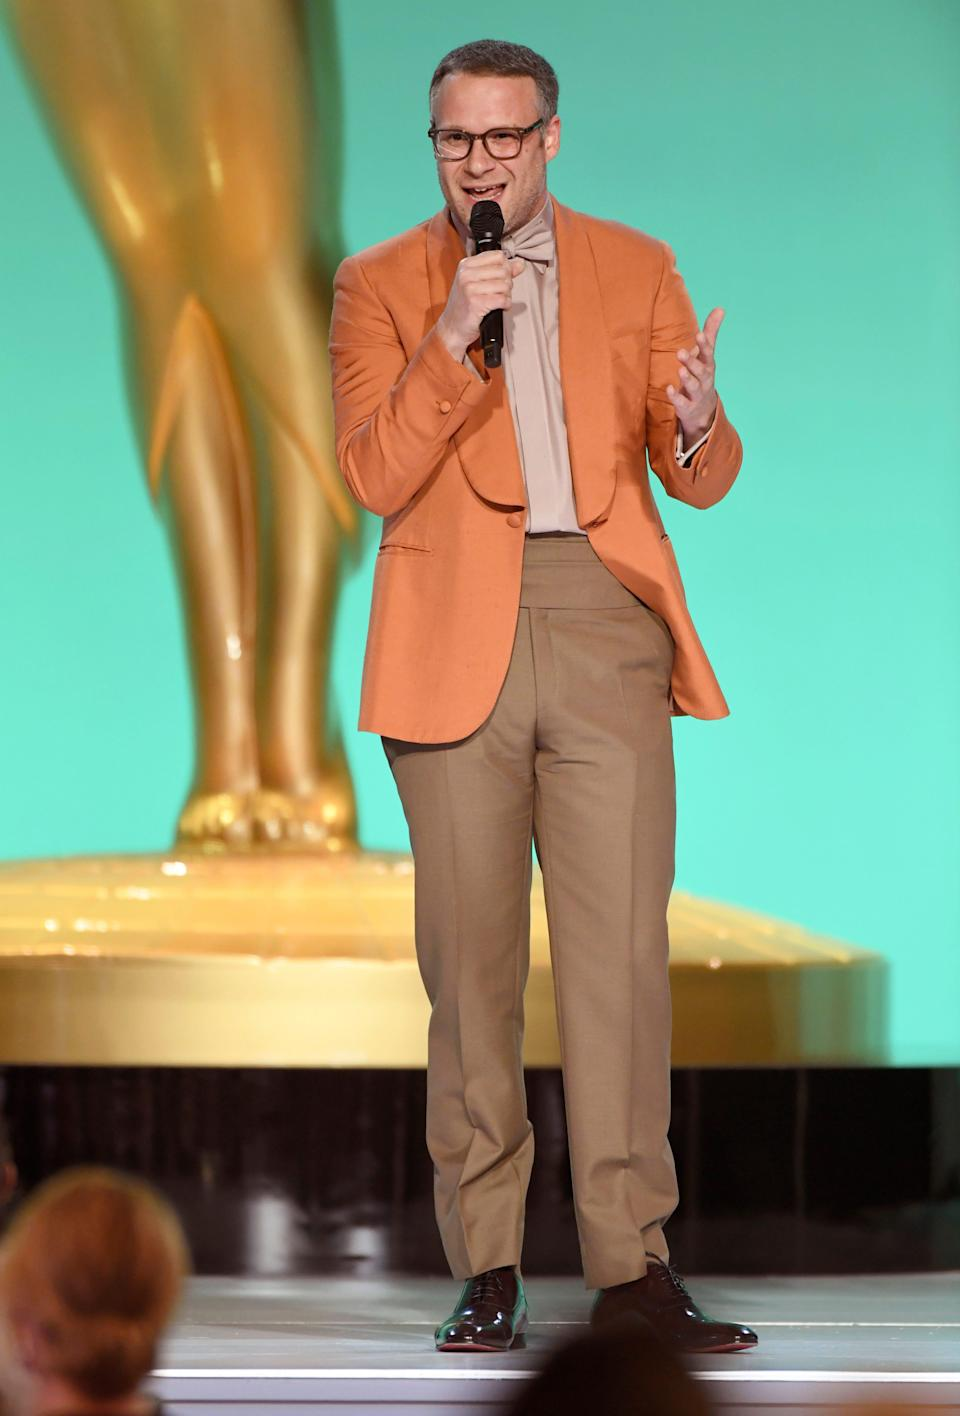 Seth Rogen presents the award for outstanding supporting actress in a comedy series at the 73rd Emmy Awards on Sunday at the Event Deck at L.A. LIVE in Los Angeles.